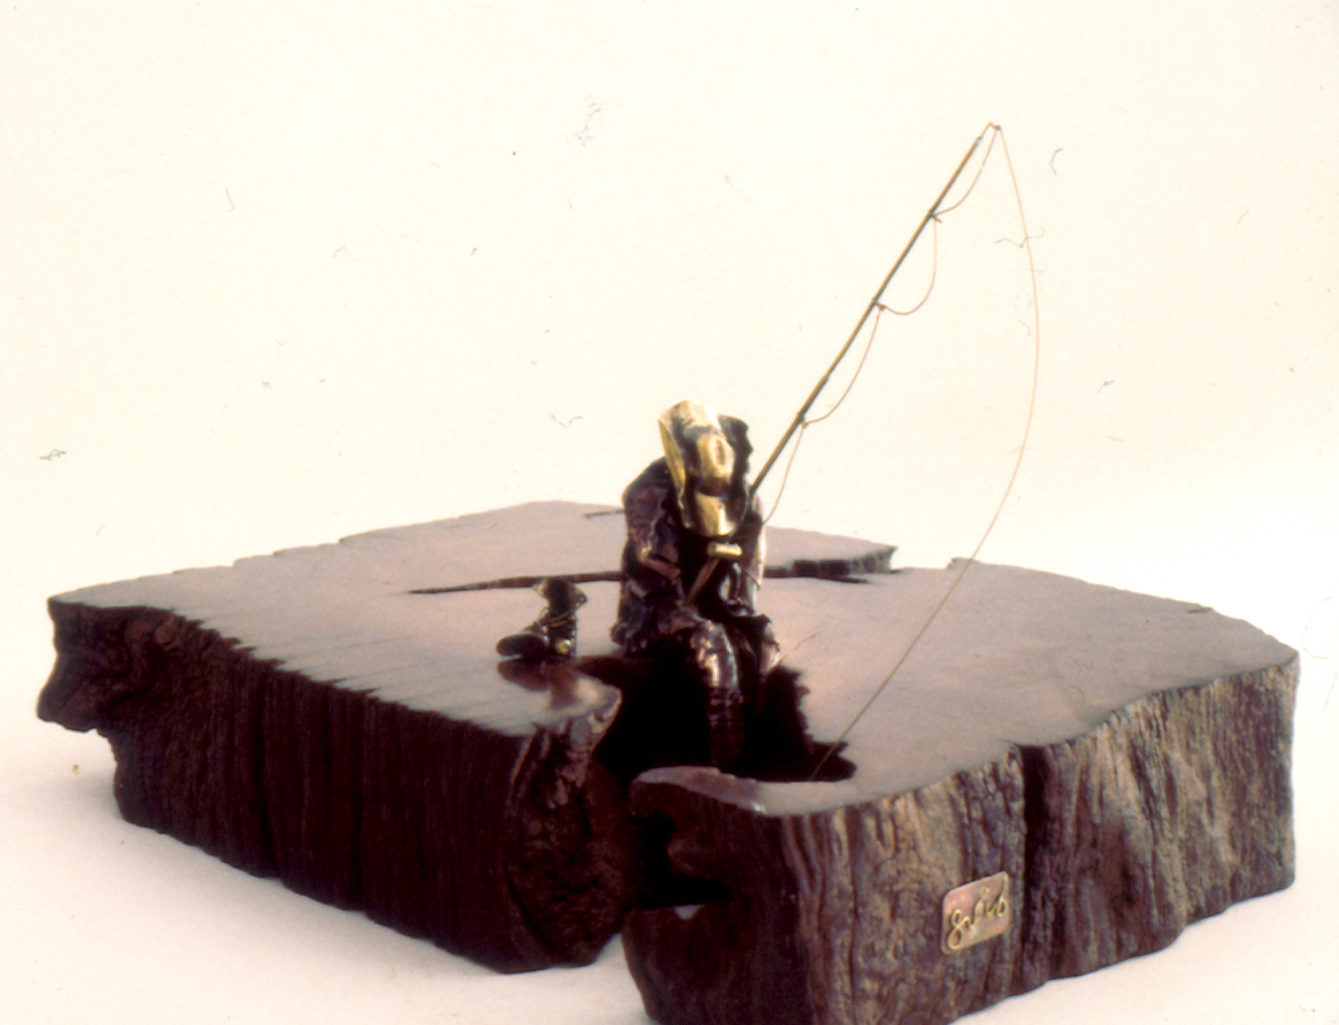 Fisherman 5 x 6 x 9 in Copper, brass sheet welding & embossing on wood